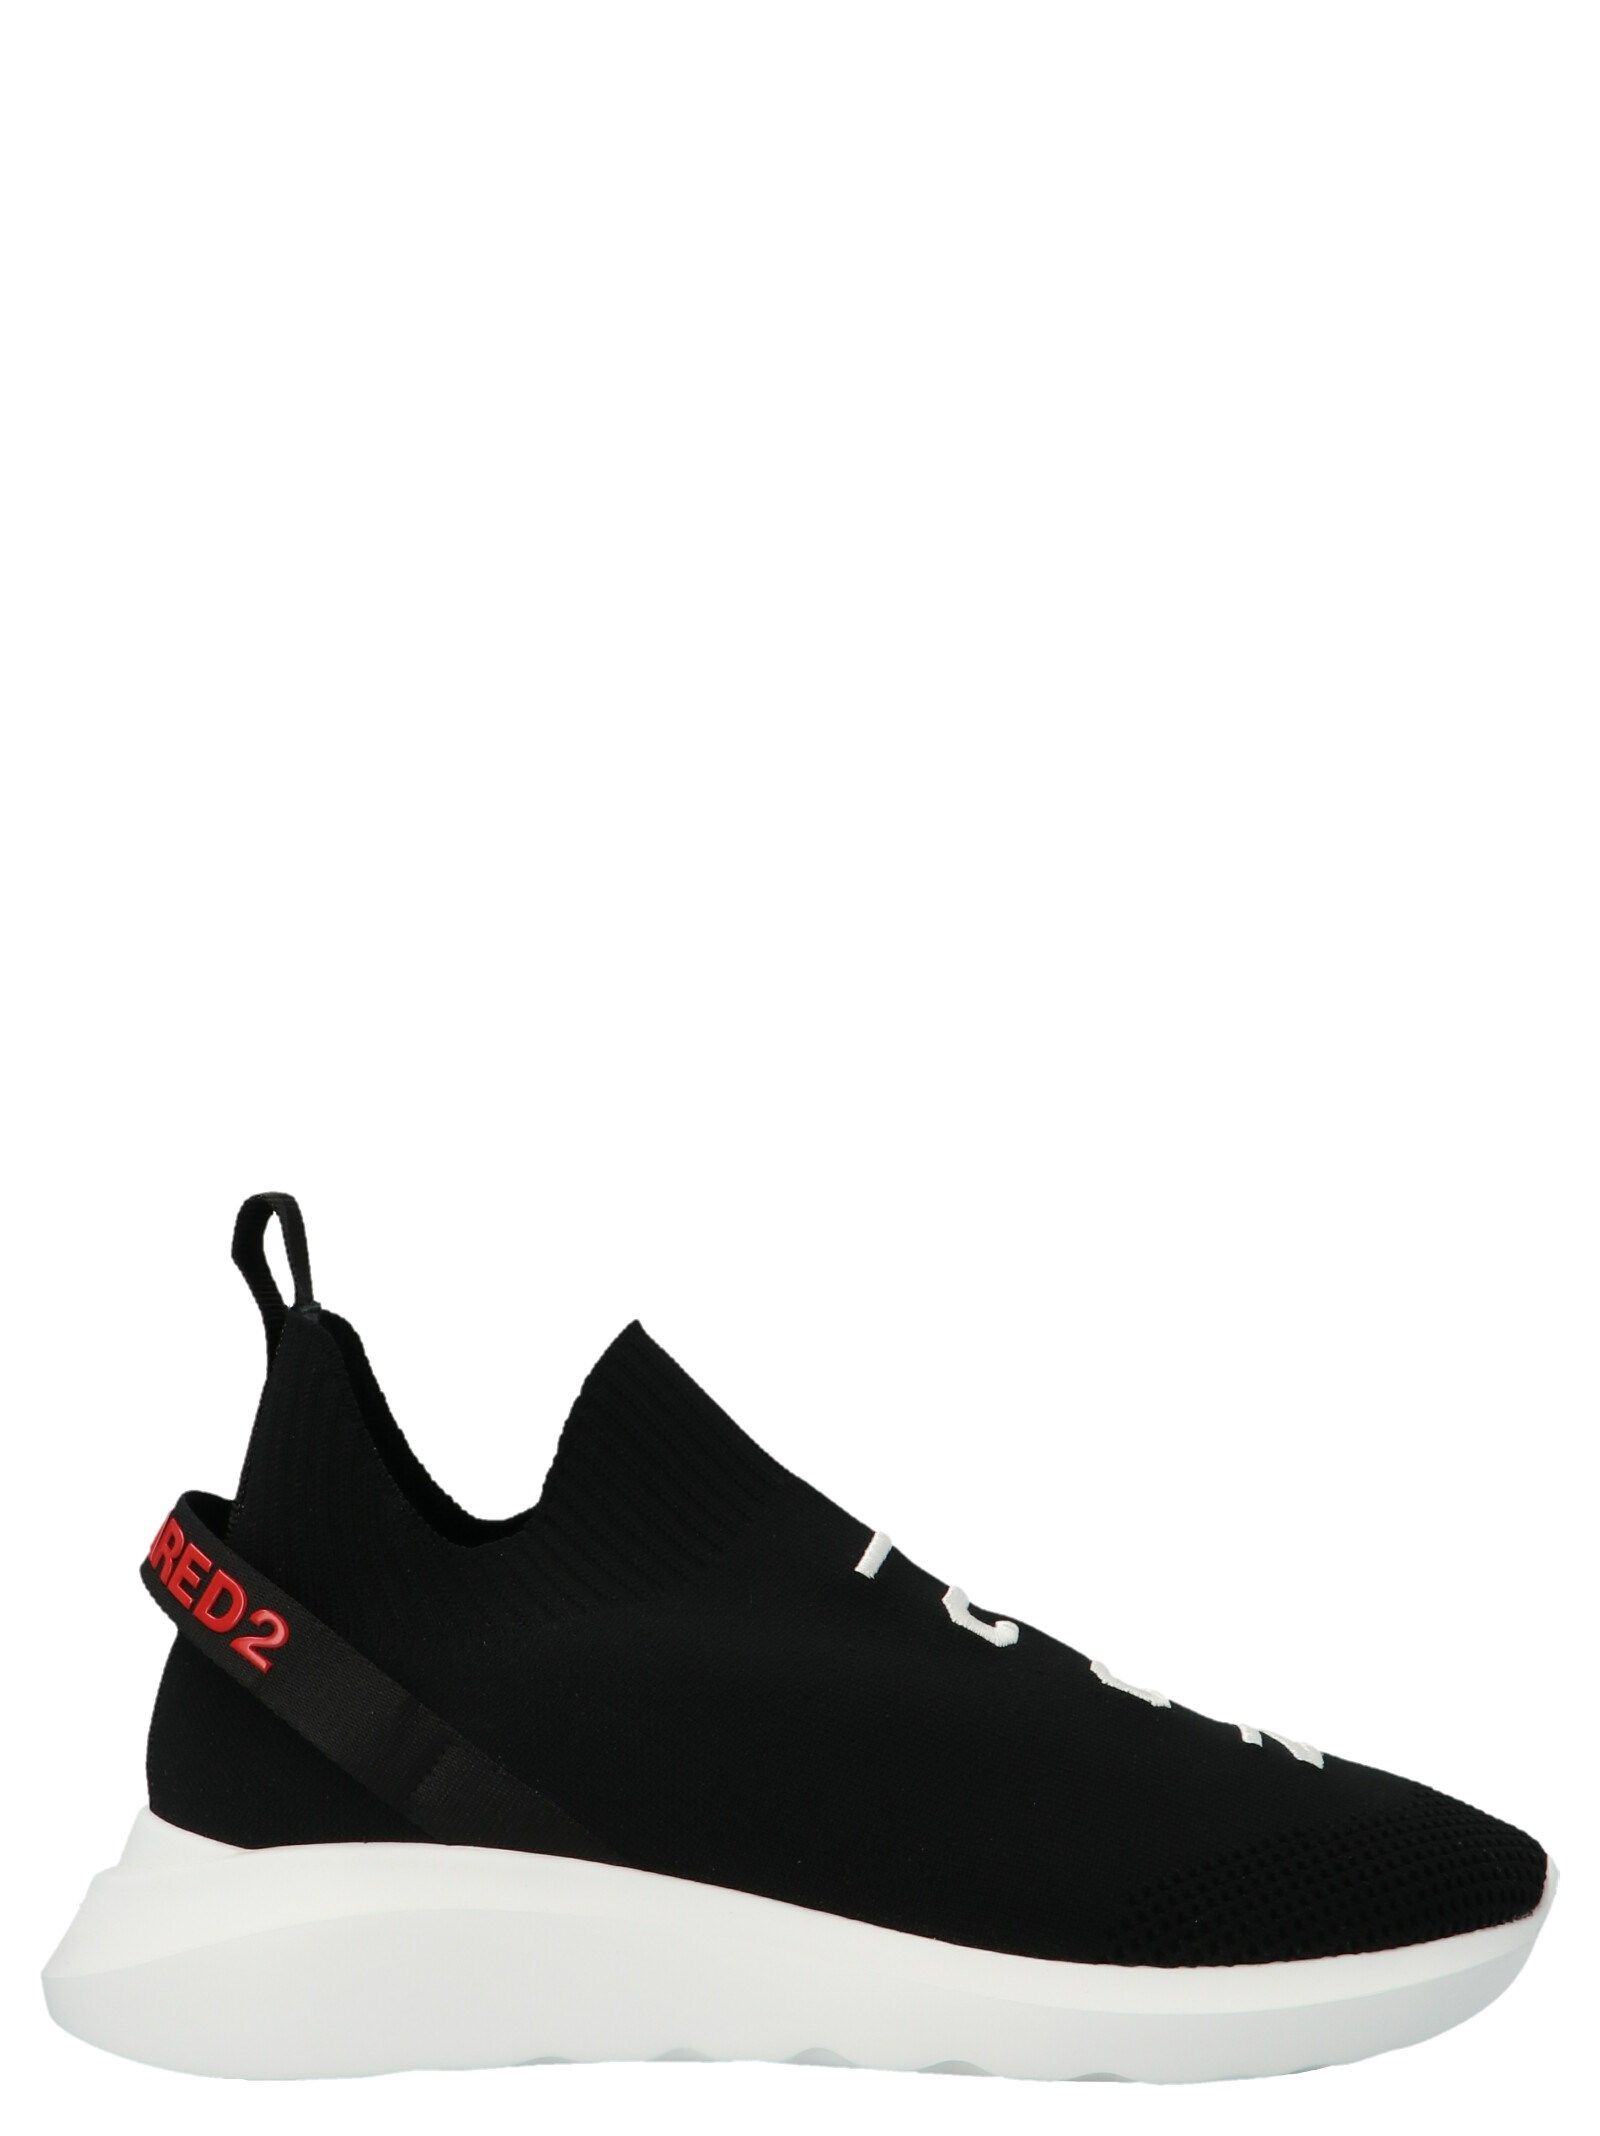 Dsquared2 Sneakers DSQUARED2 MEN'S BLACK FABRIC SNEAKERS